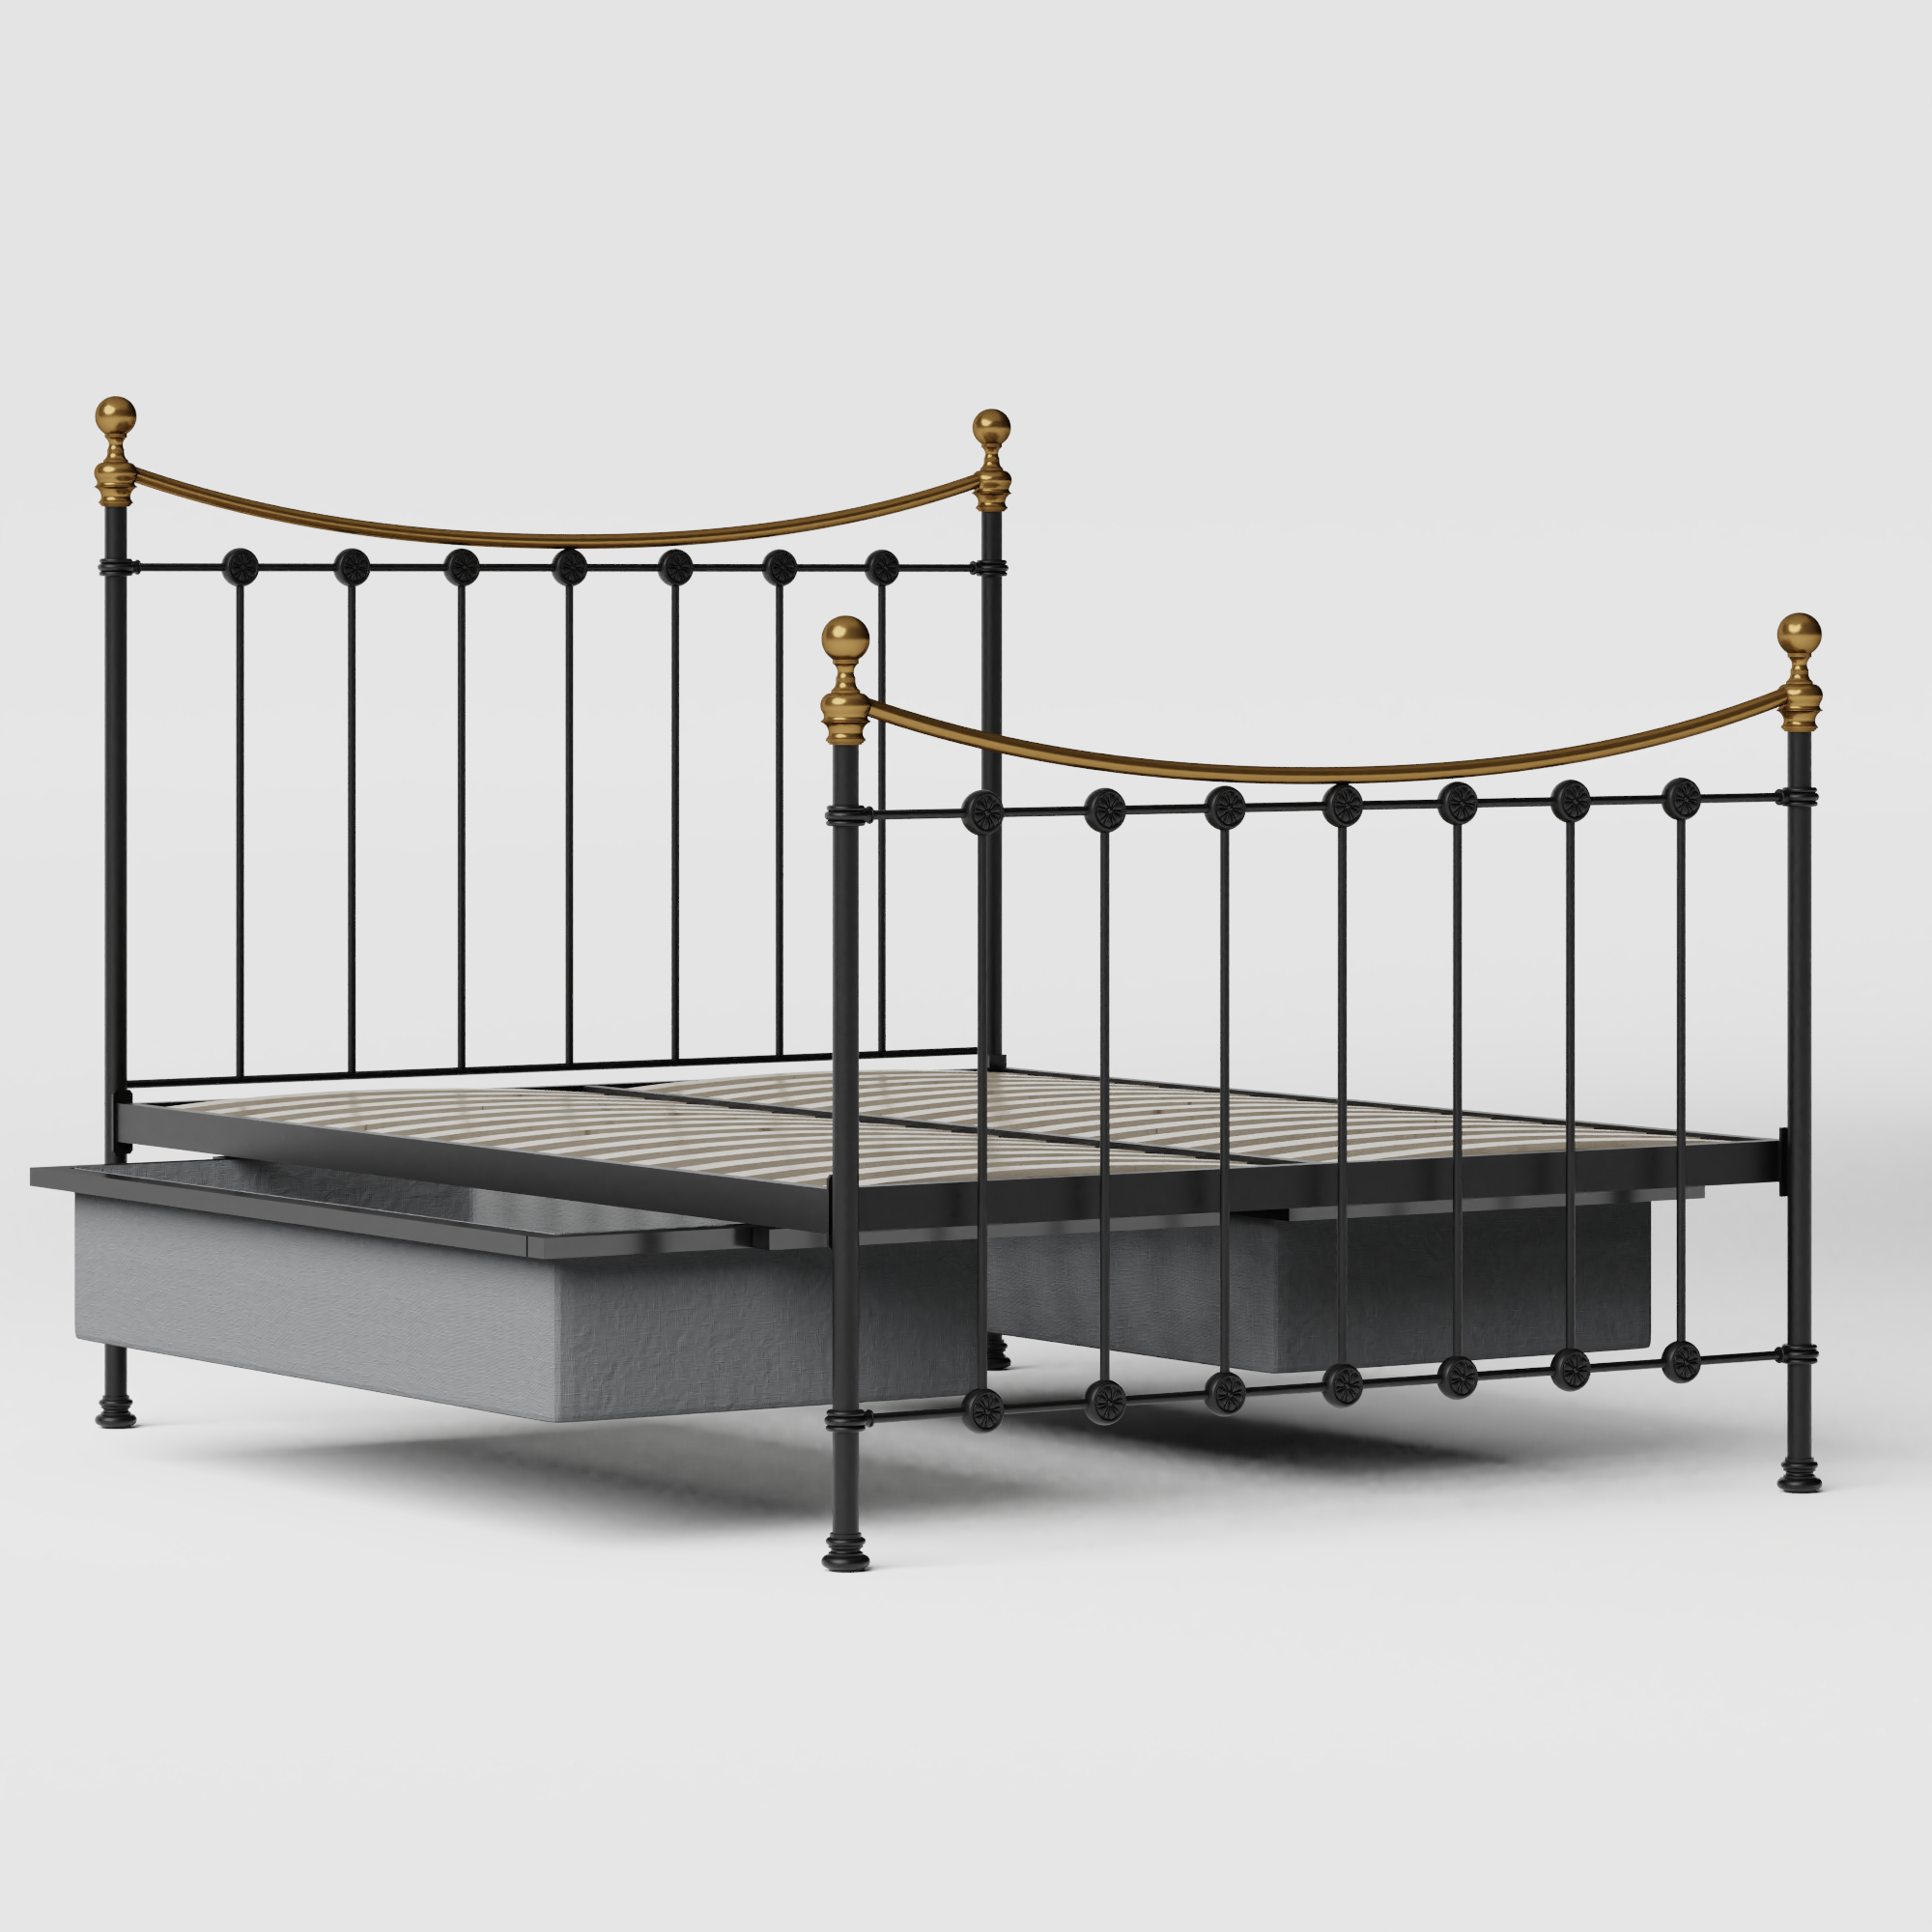 Carrick iron/metal bed in black with drawers